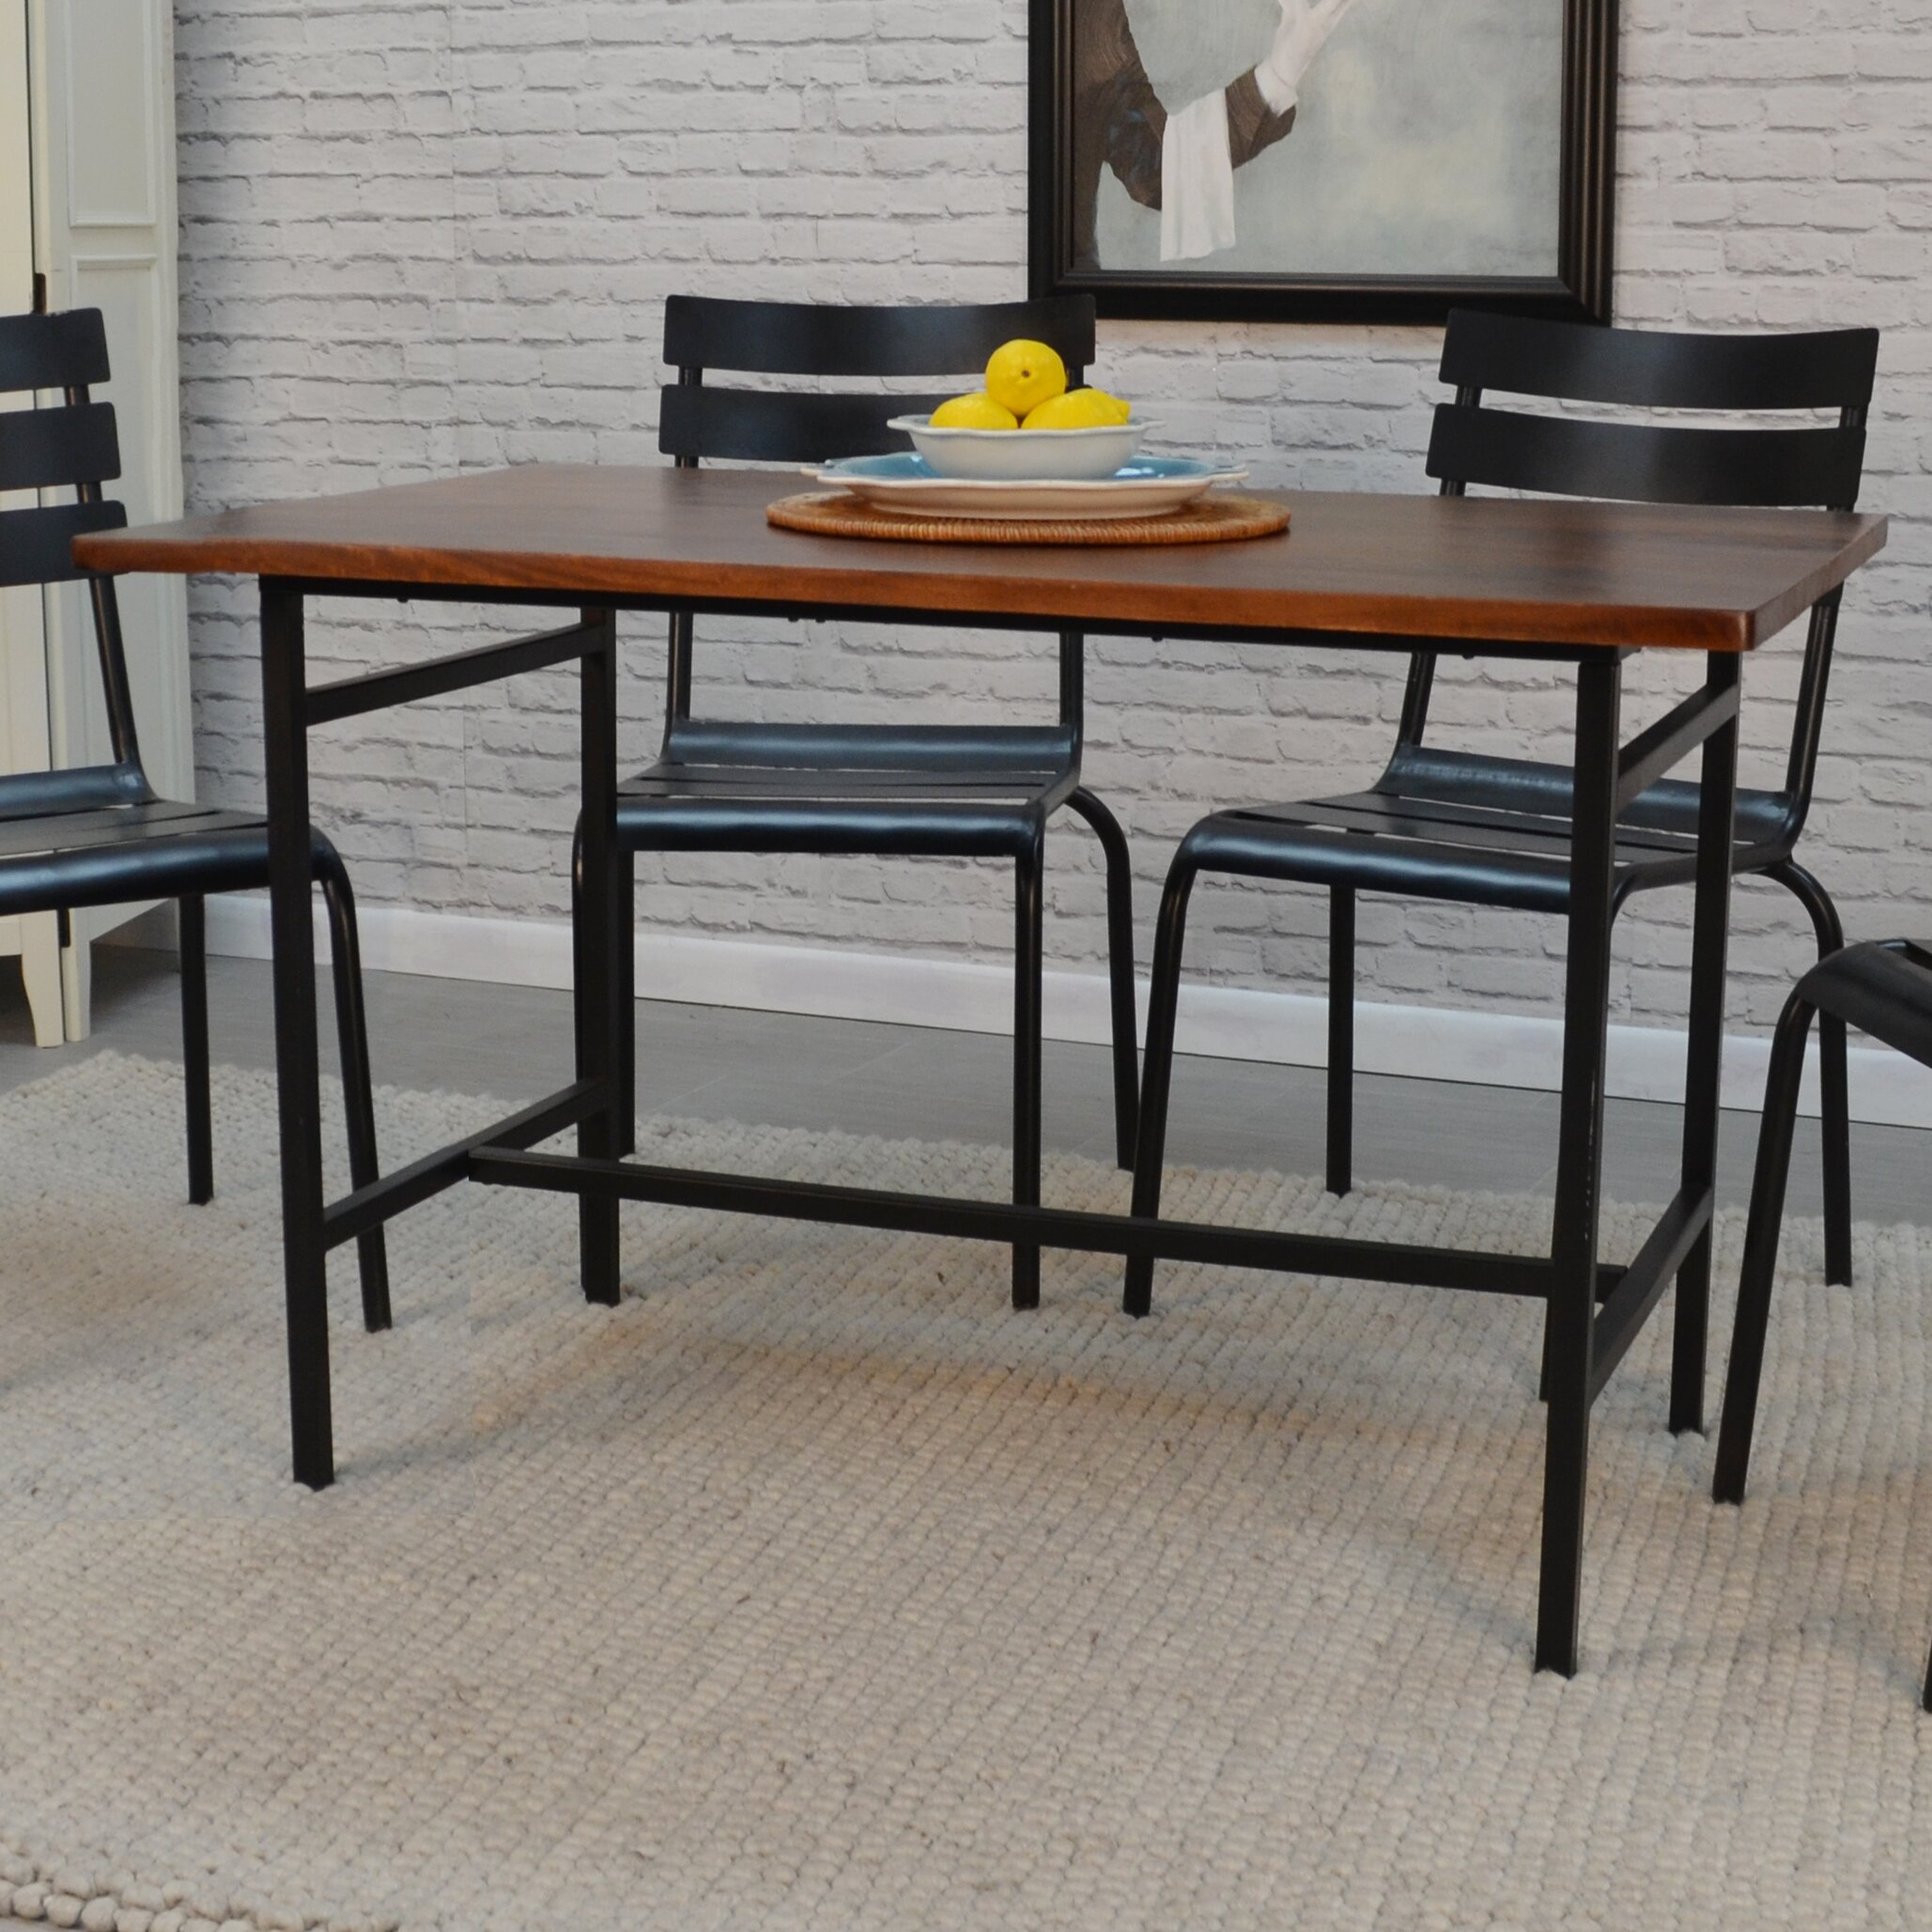 Farmhouse Dining Table: Laurel Foundry Modern Farmhouse Cortaro Dining Table